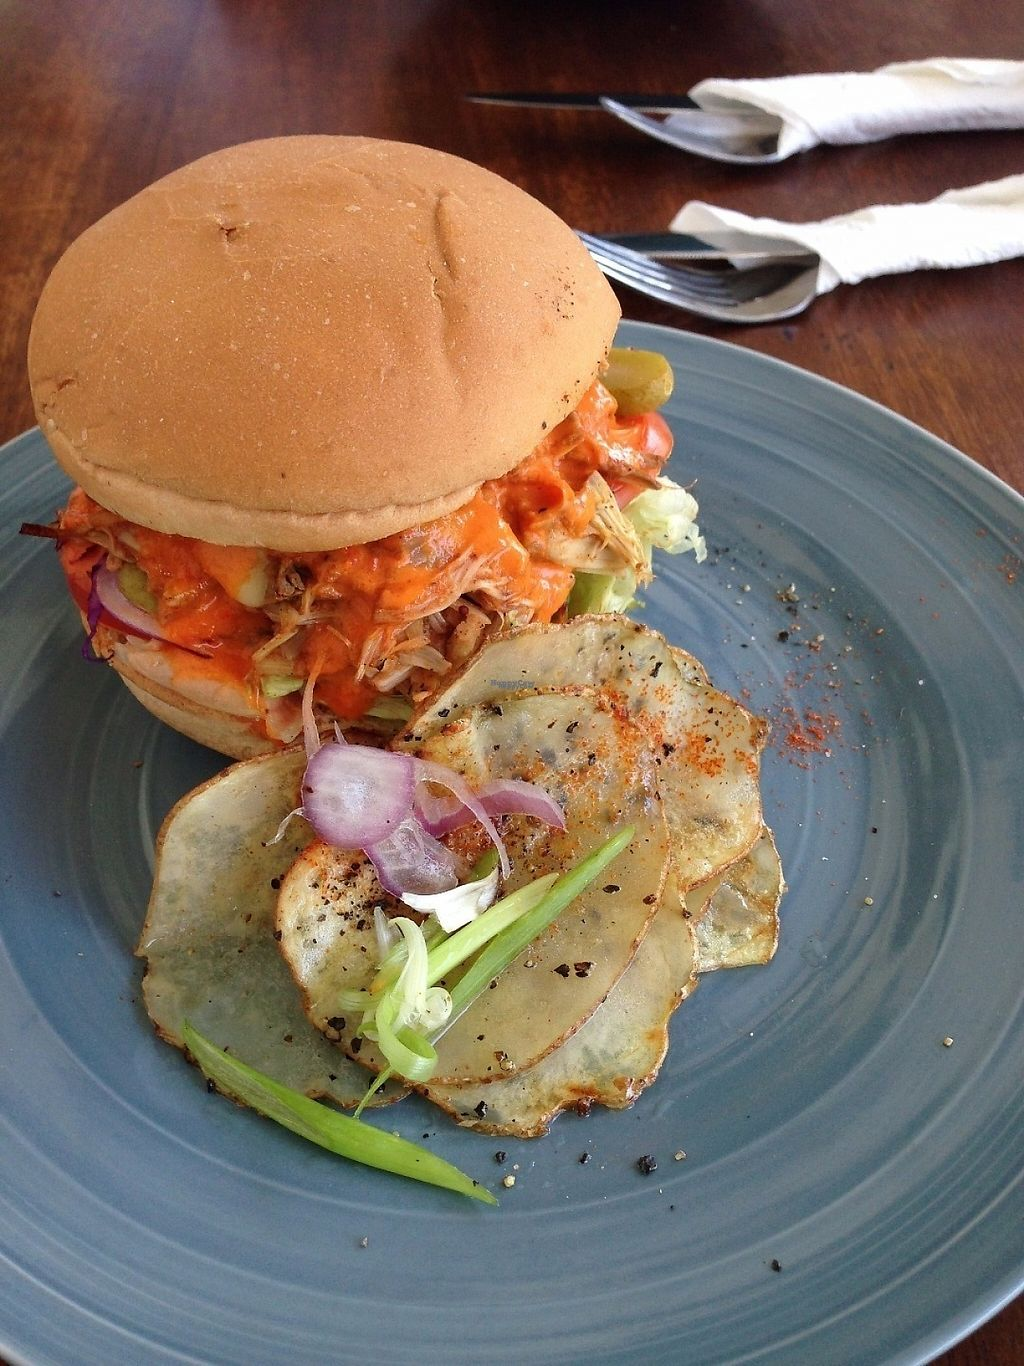 """Photo of Cafe Kumbuk Good Market  by <a href=""""/members/profile/CatDouglas"""">CatDouglas</a> <br/>Jackfruit """"pulled pork"""" burger - Vegan <br/> February 28, 2017  - <a href='/contact/abuse/image/86812/231170'>Report</a>"""